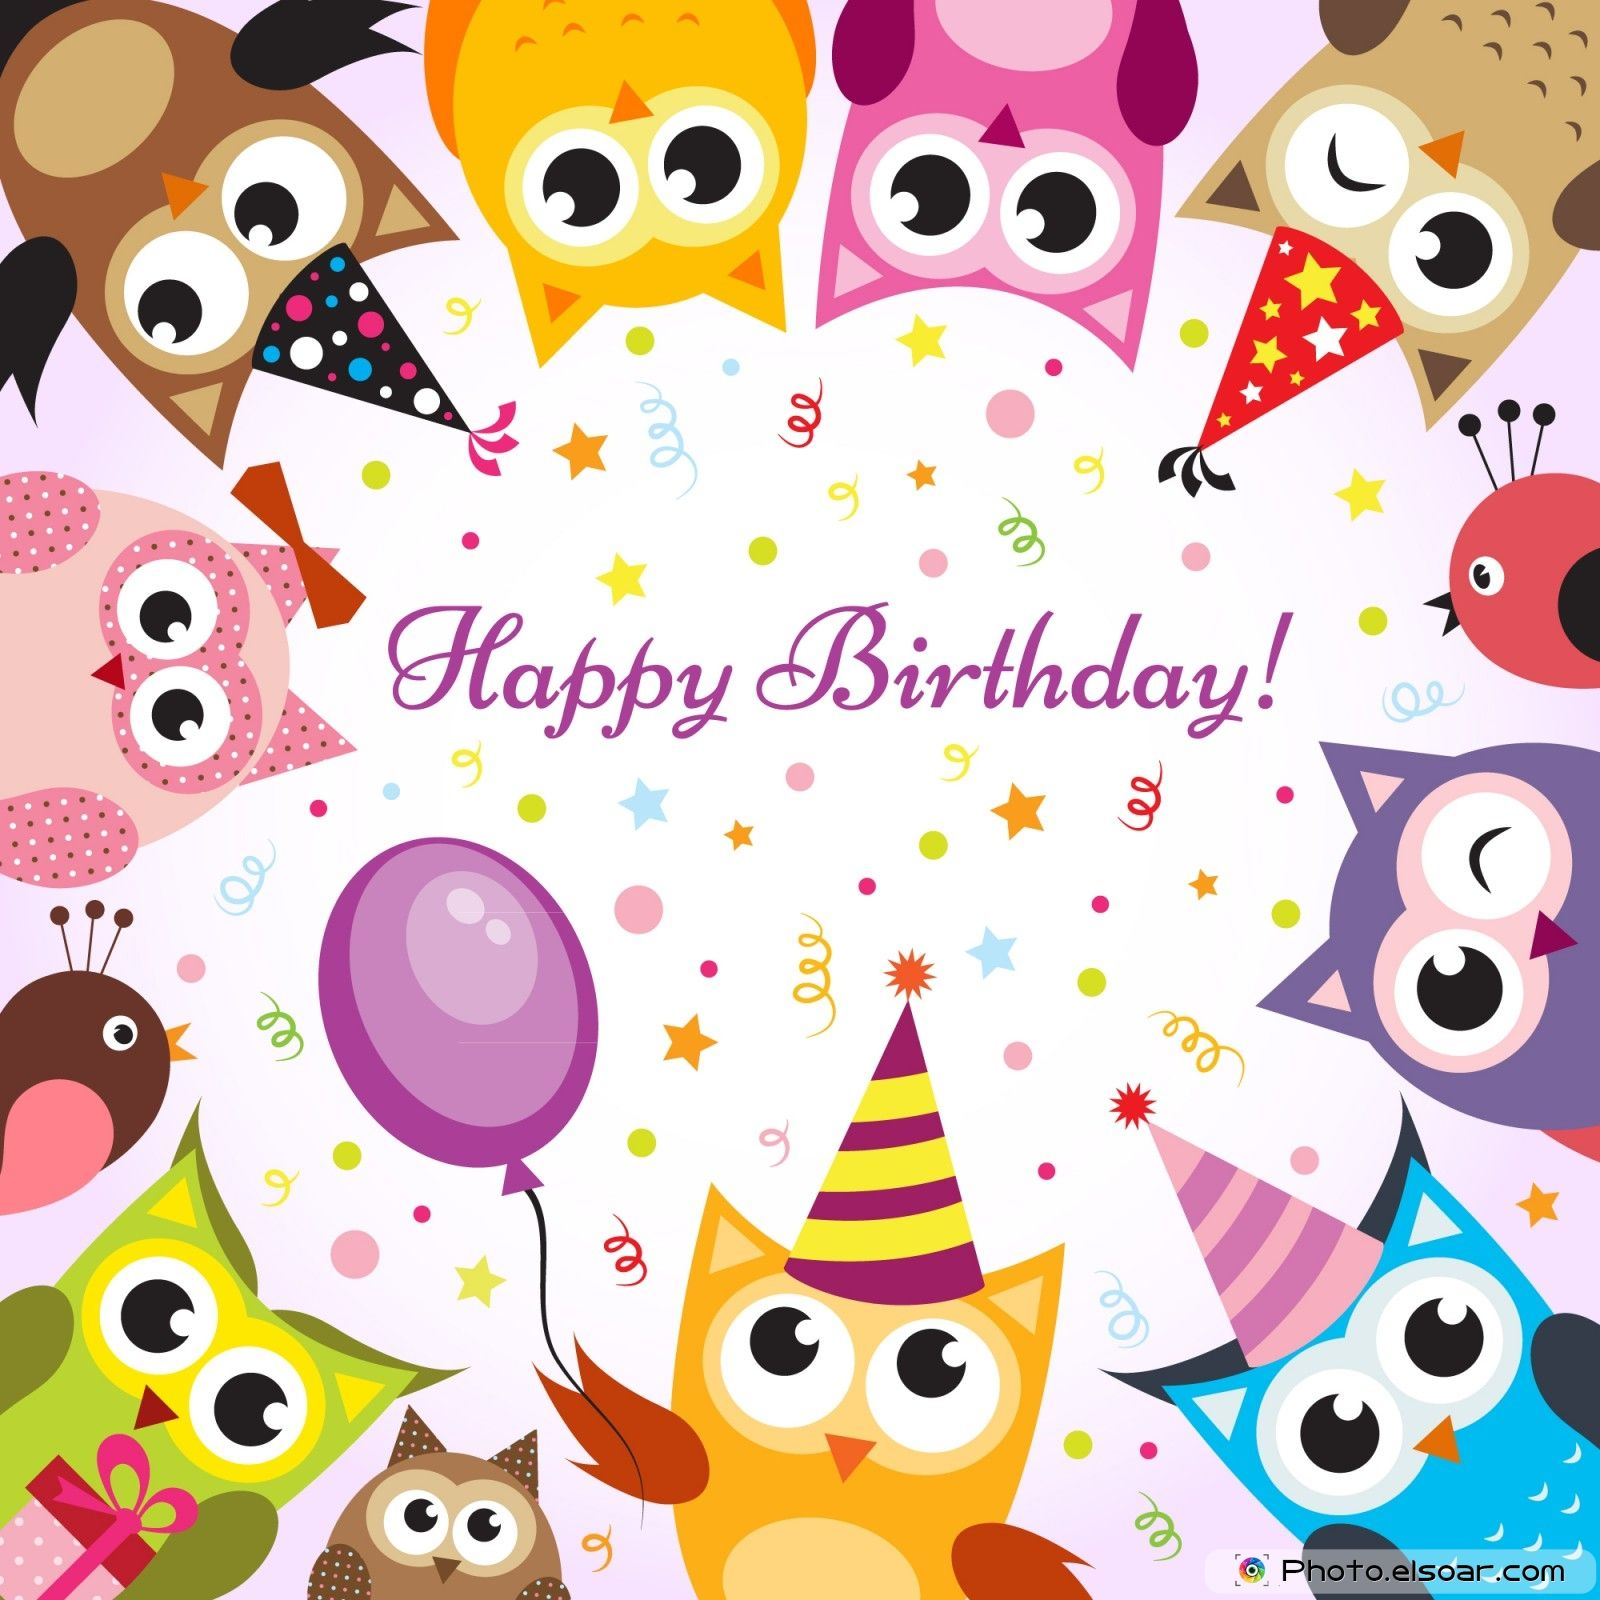 22 Happy BirthDay Cards on Bright Backgrounds